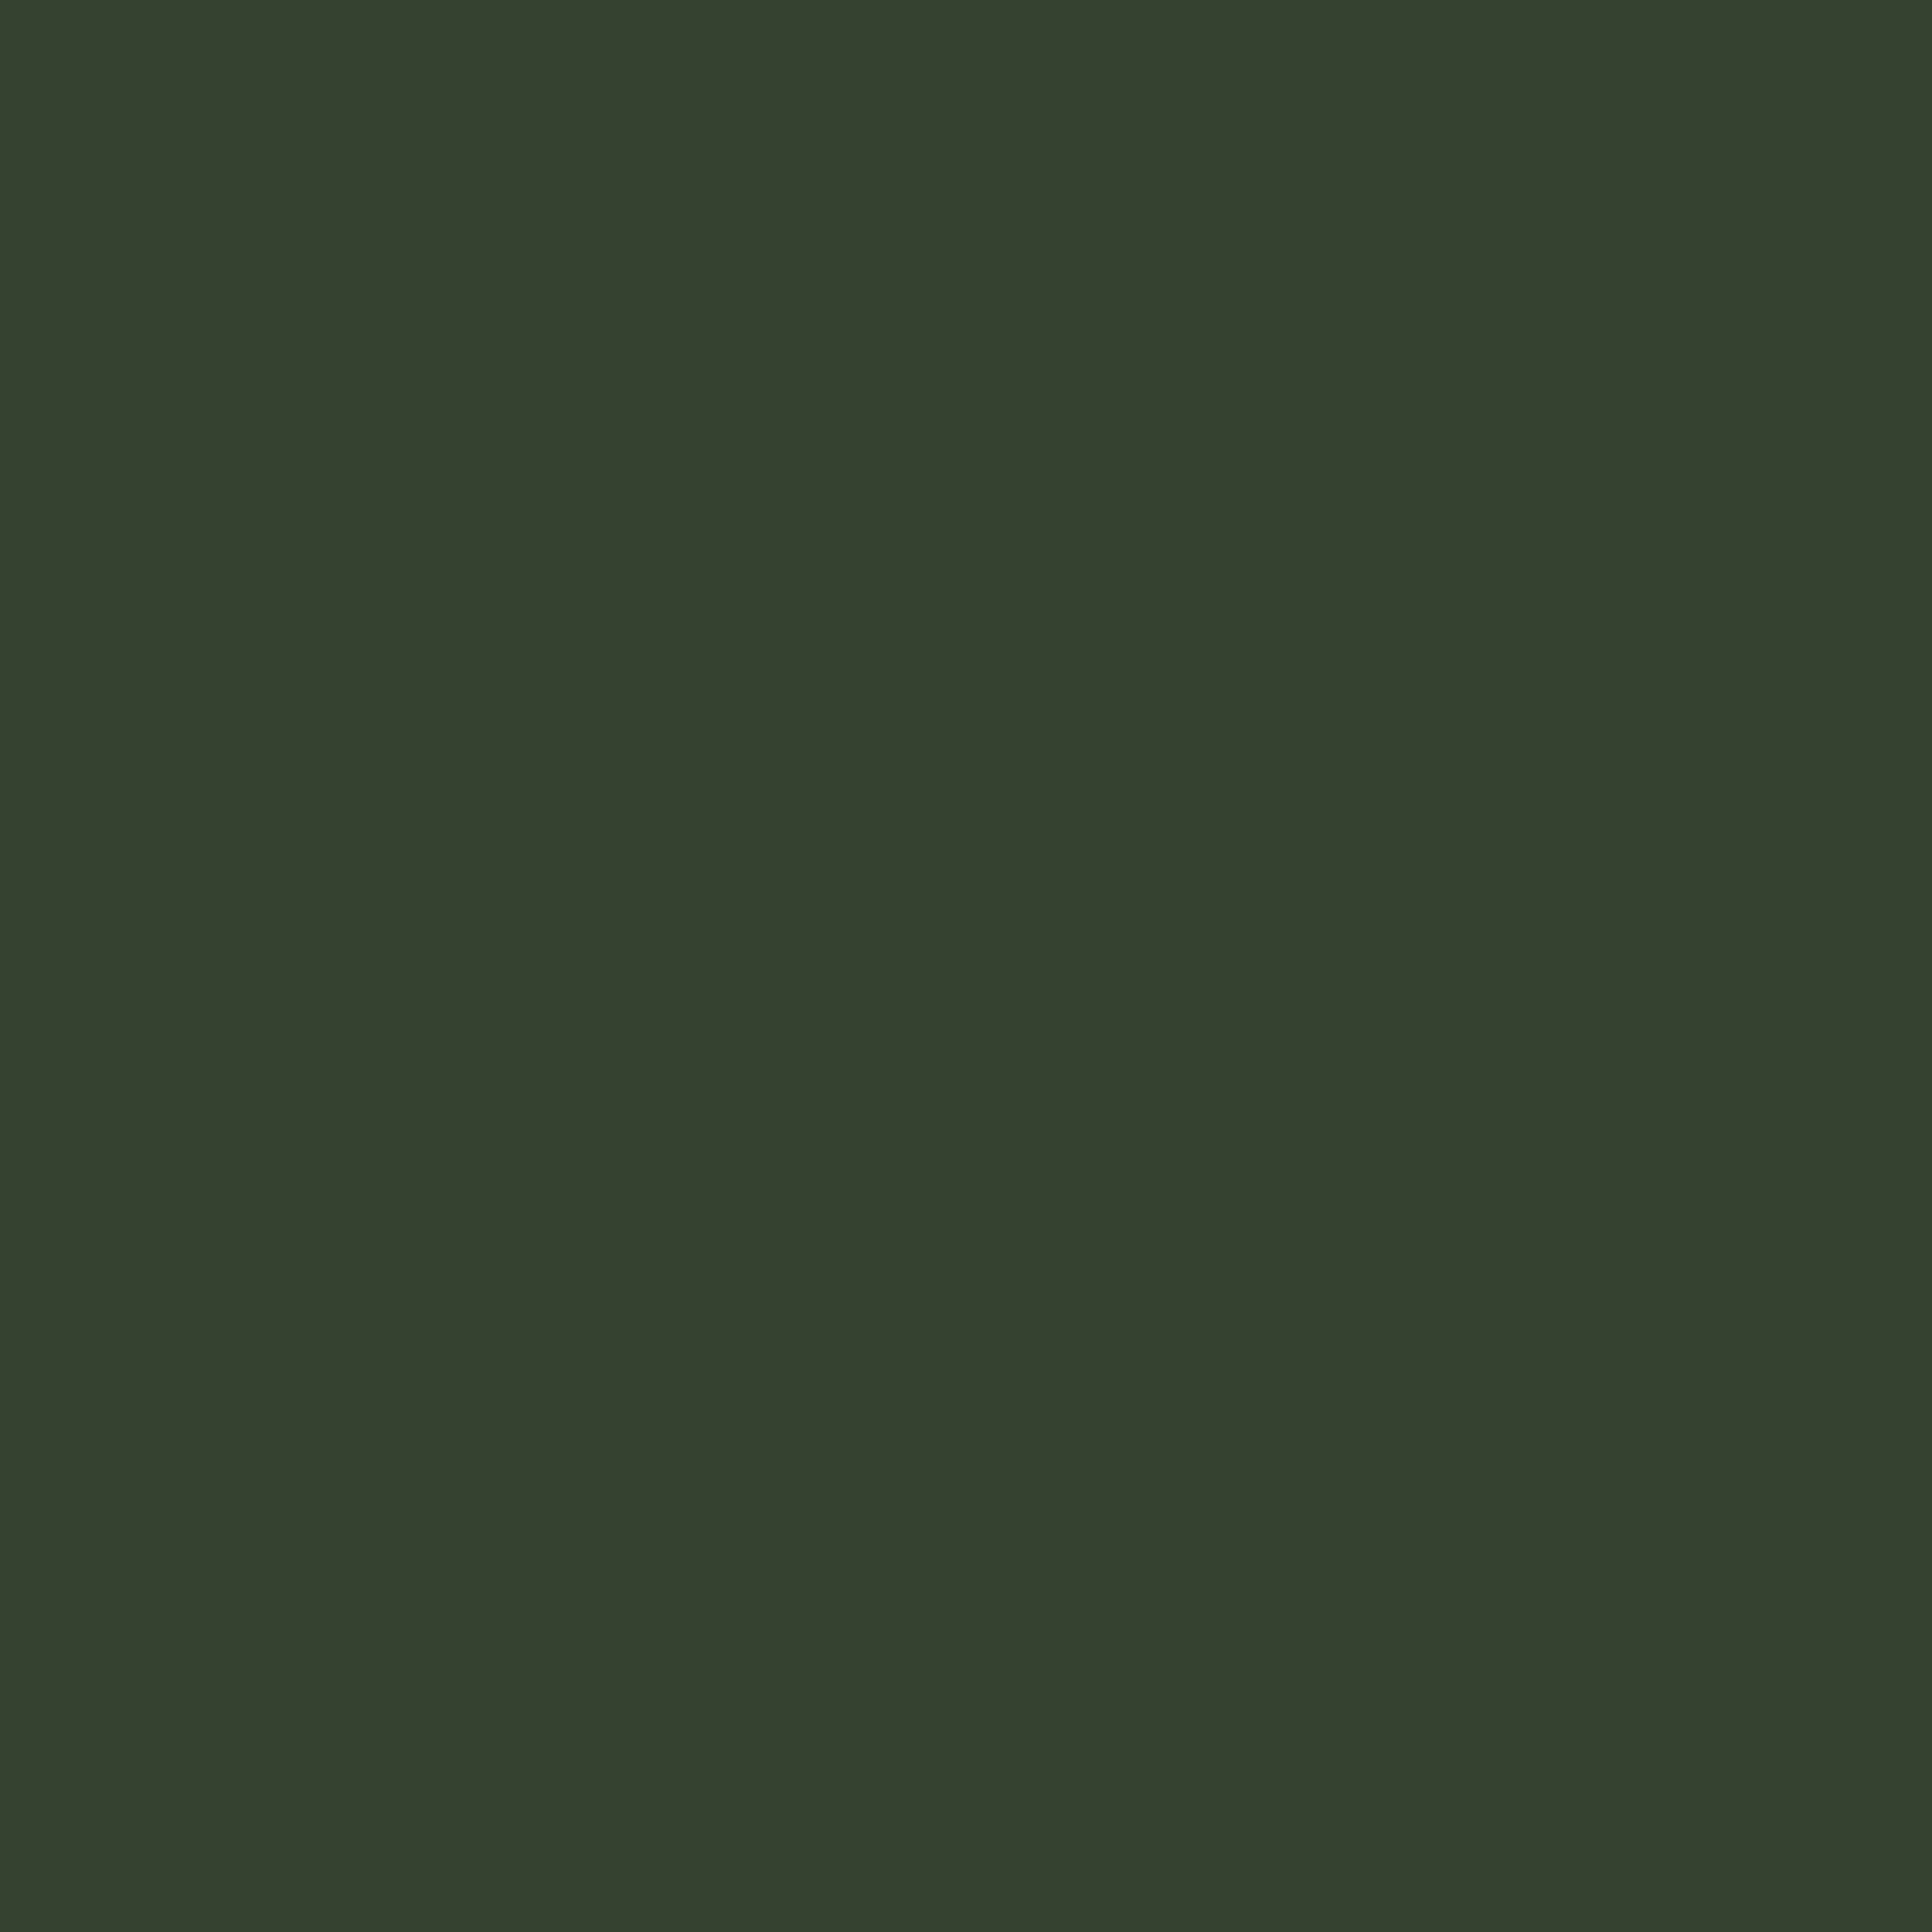 2732x2732 Kombu Green Solid Color Background